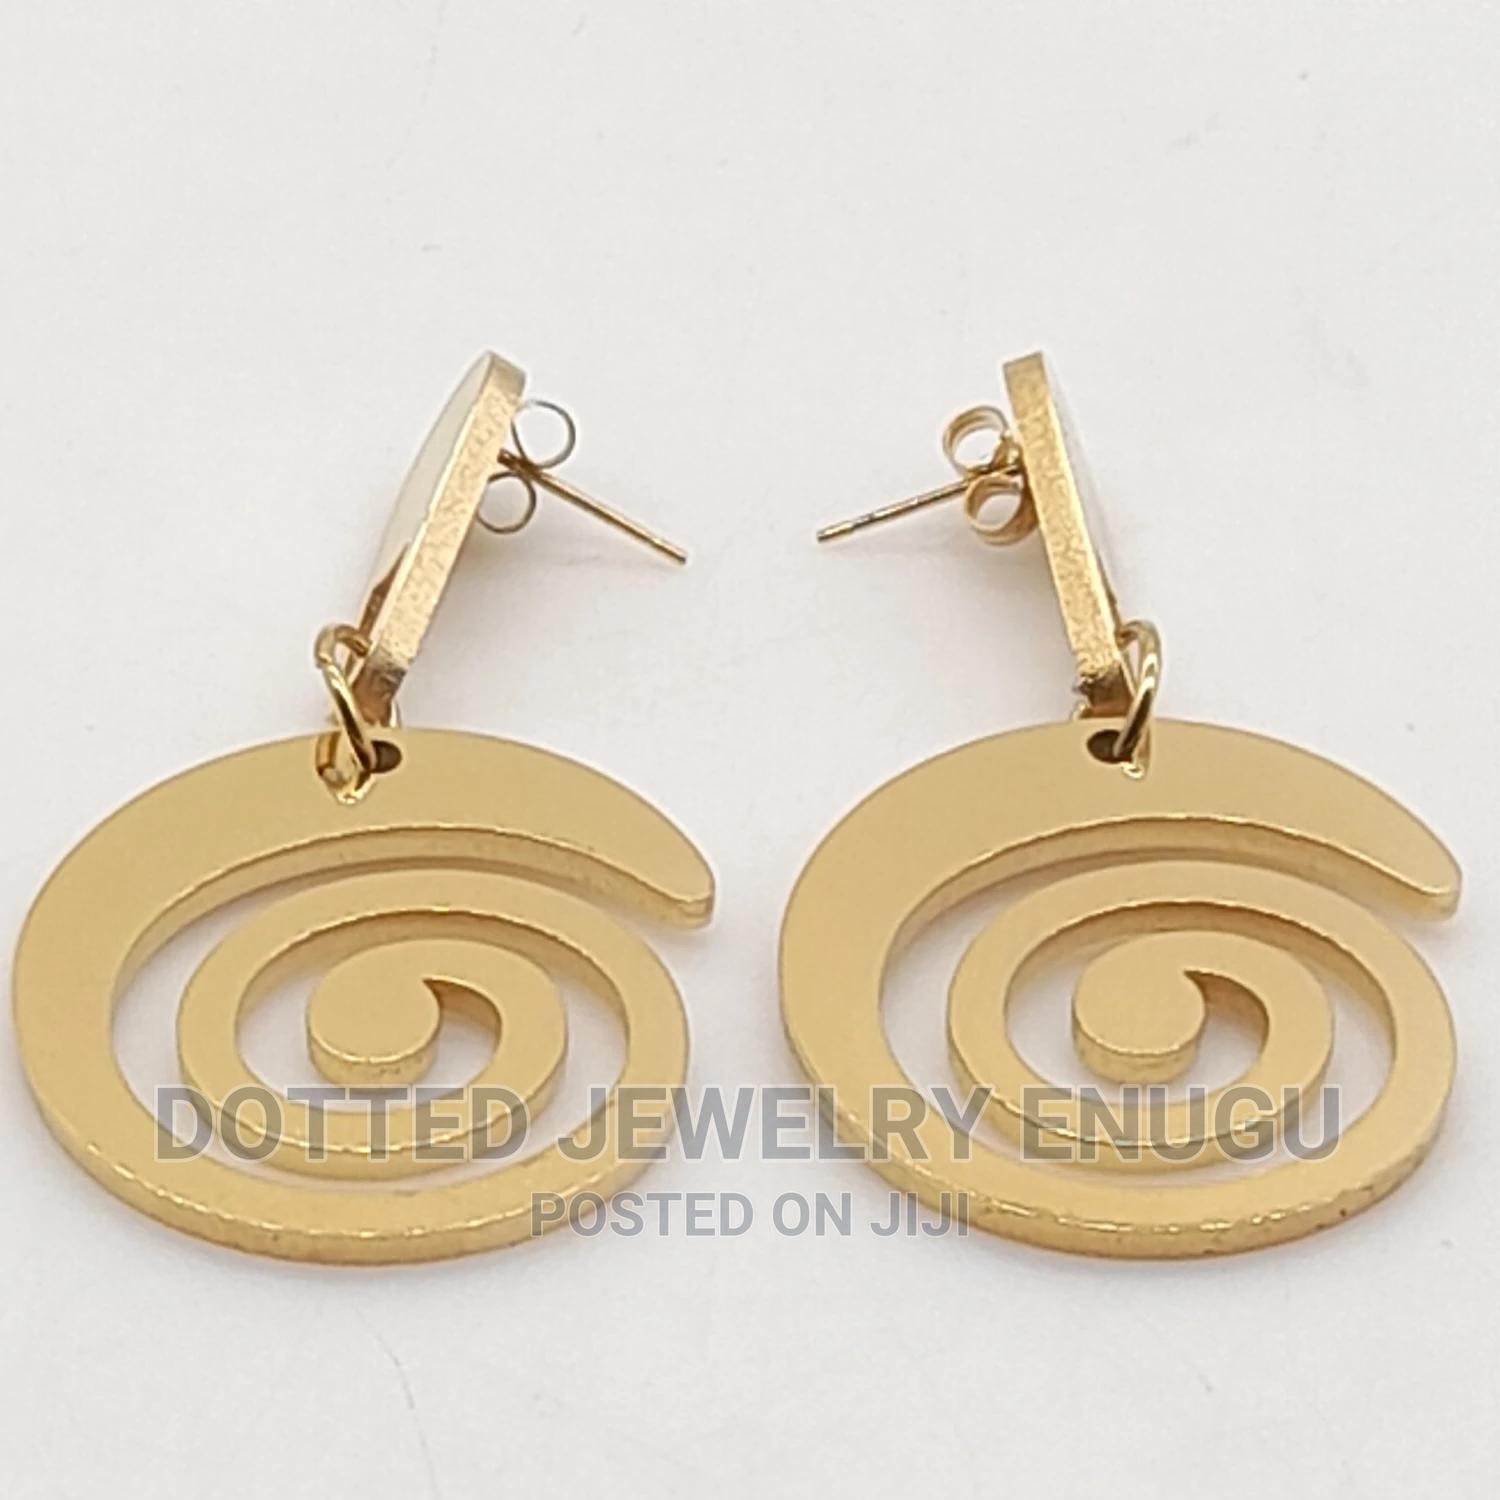 Gorgeous Stainless Steel Earring